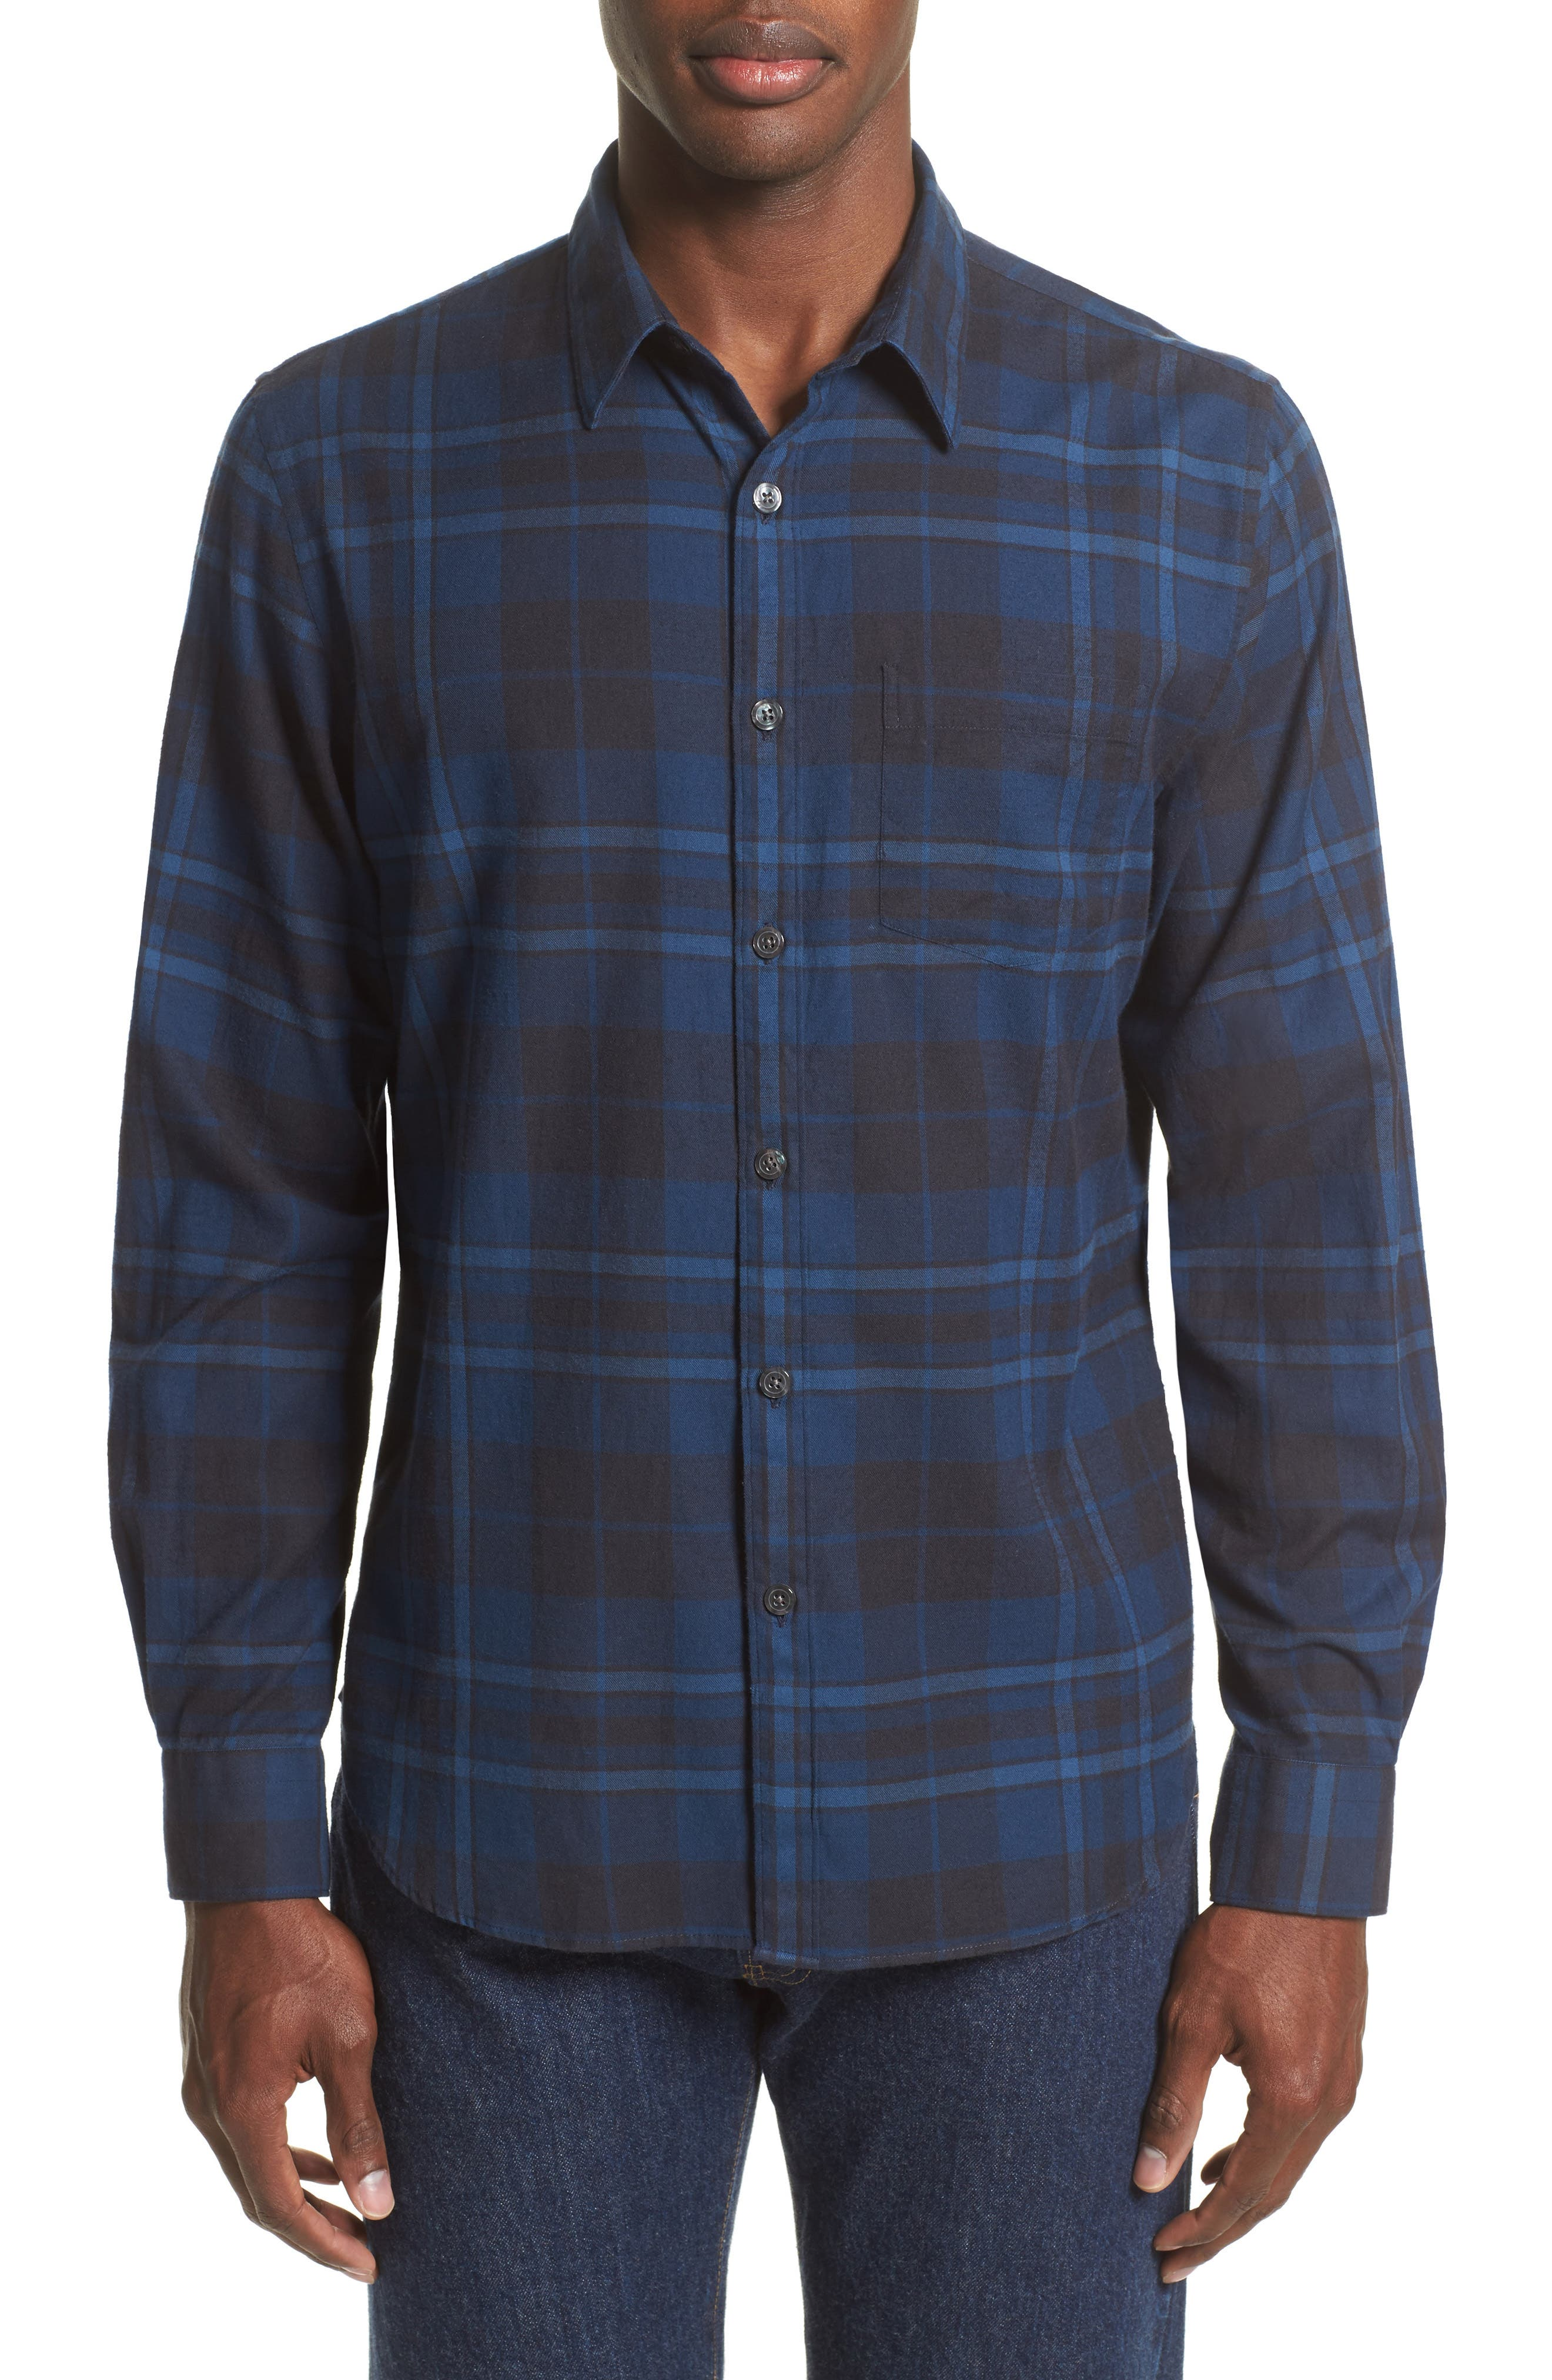 Todd Snyder Blue Flannel Shirt